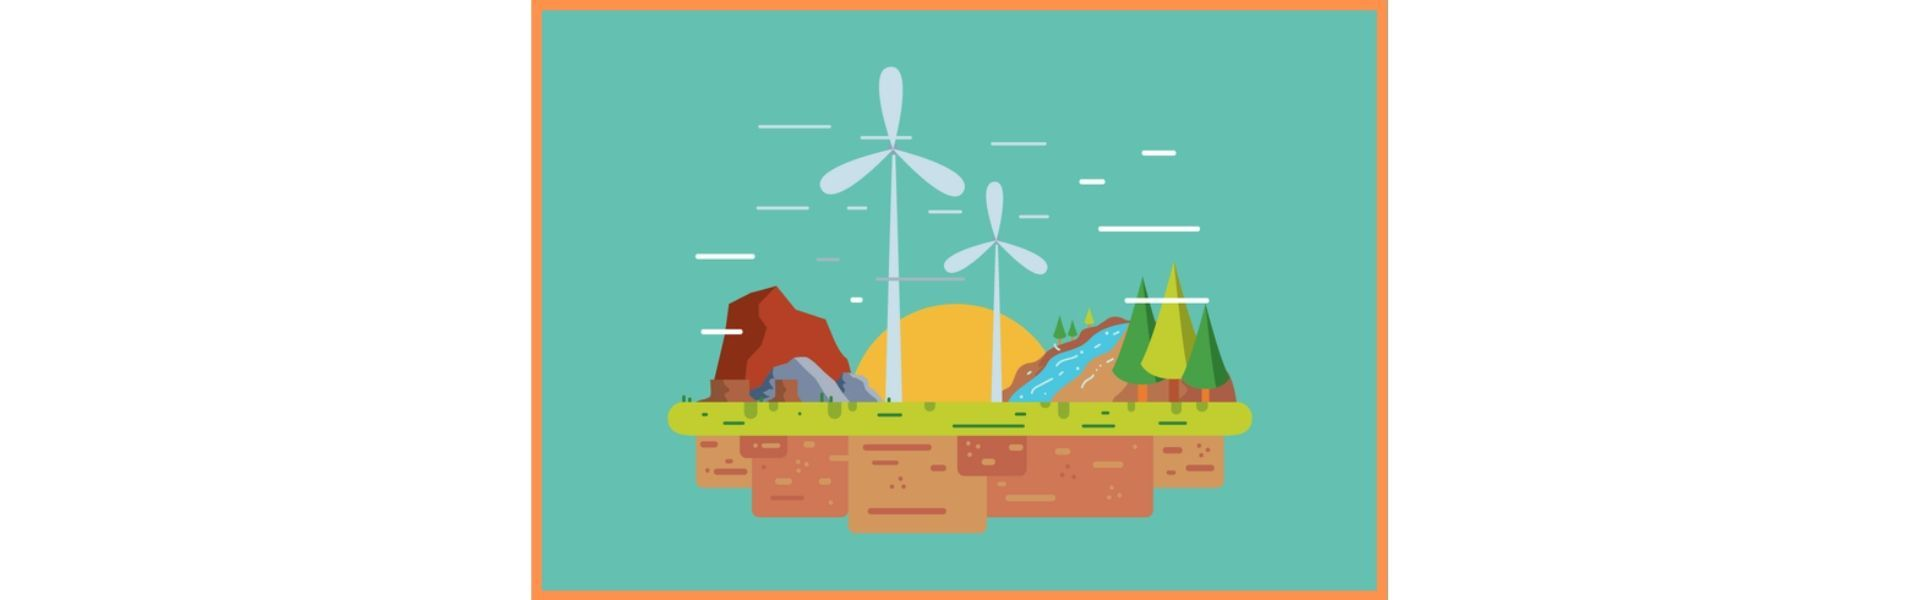 Sustainable And Renewable Resources